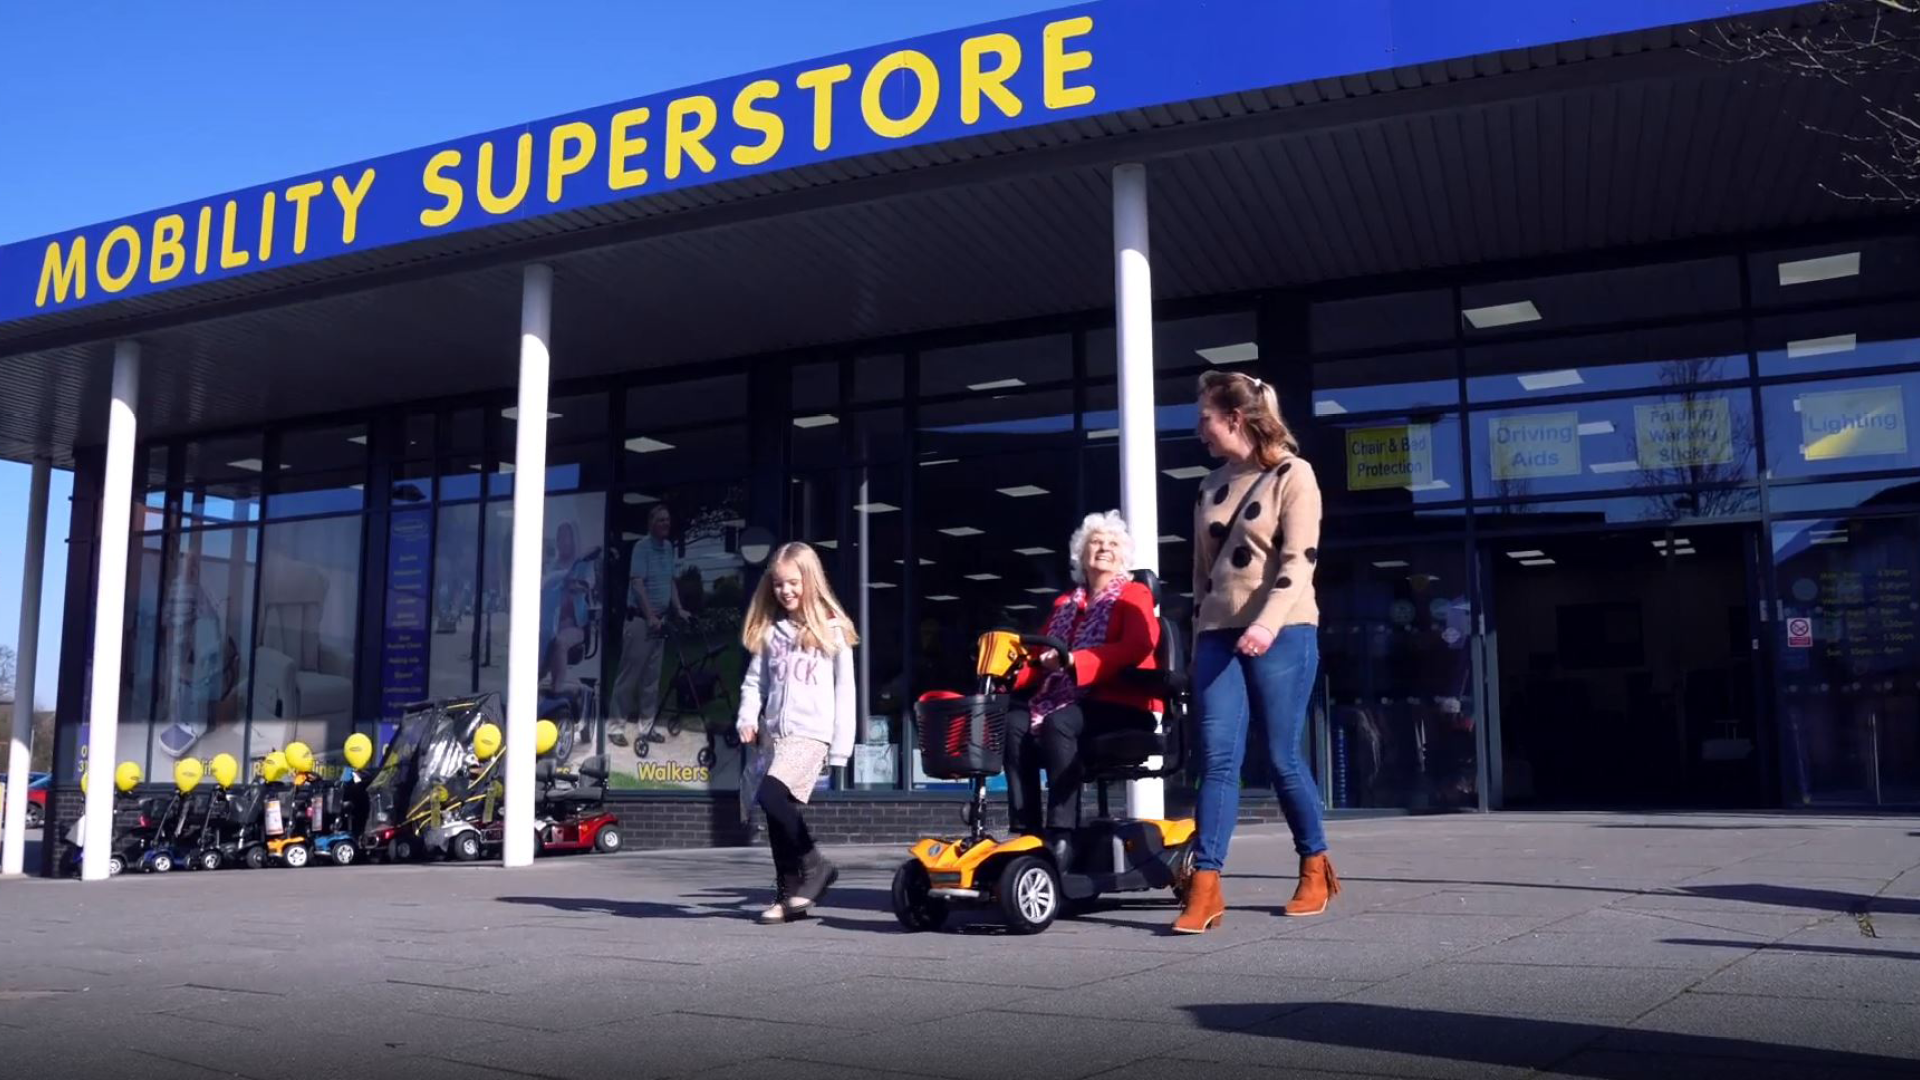 Introducing, Ableworld's new TV Advert